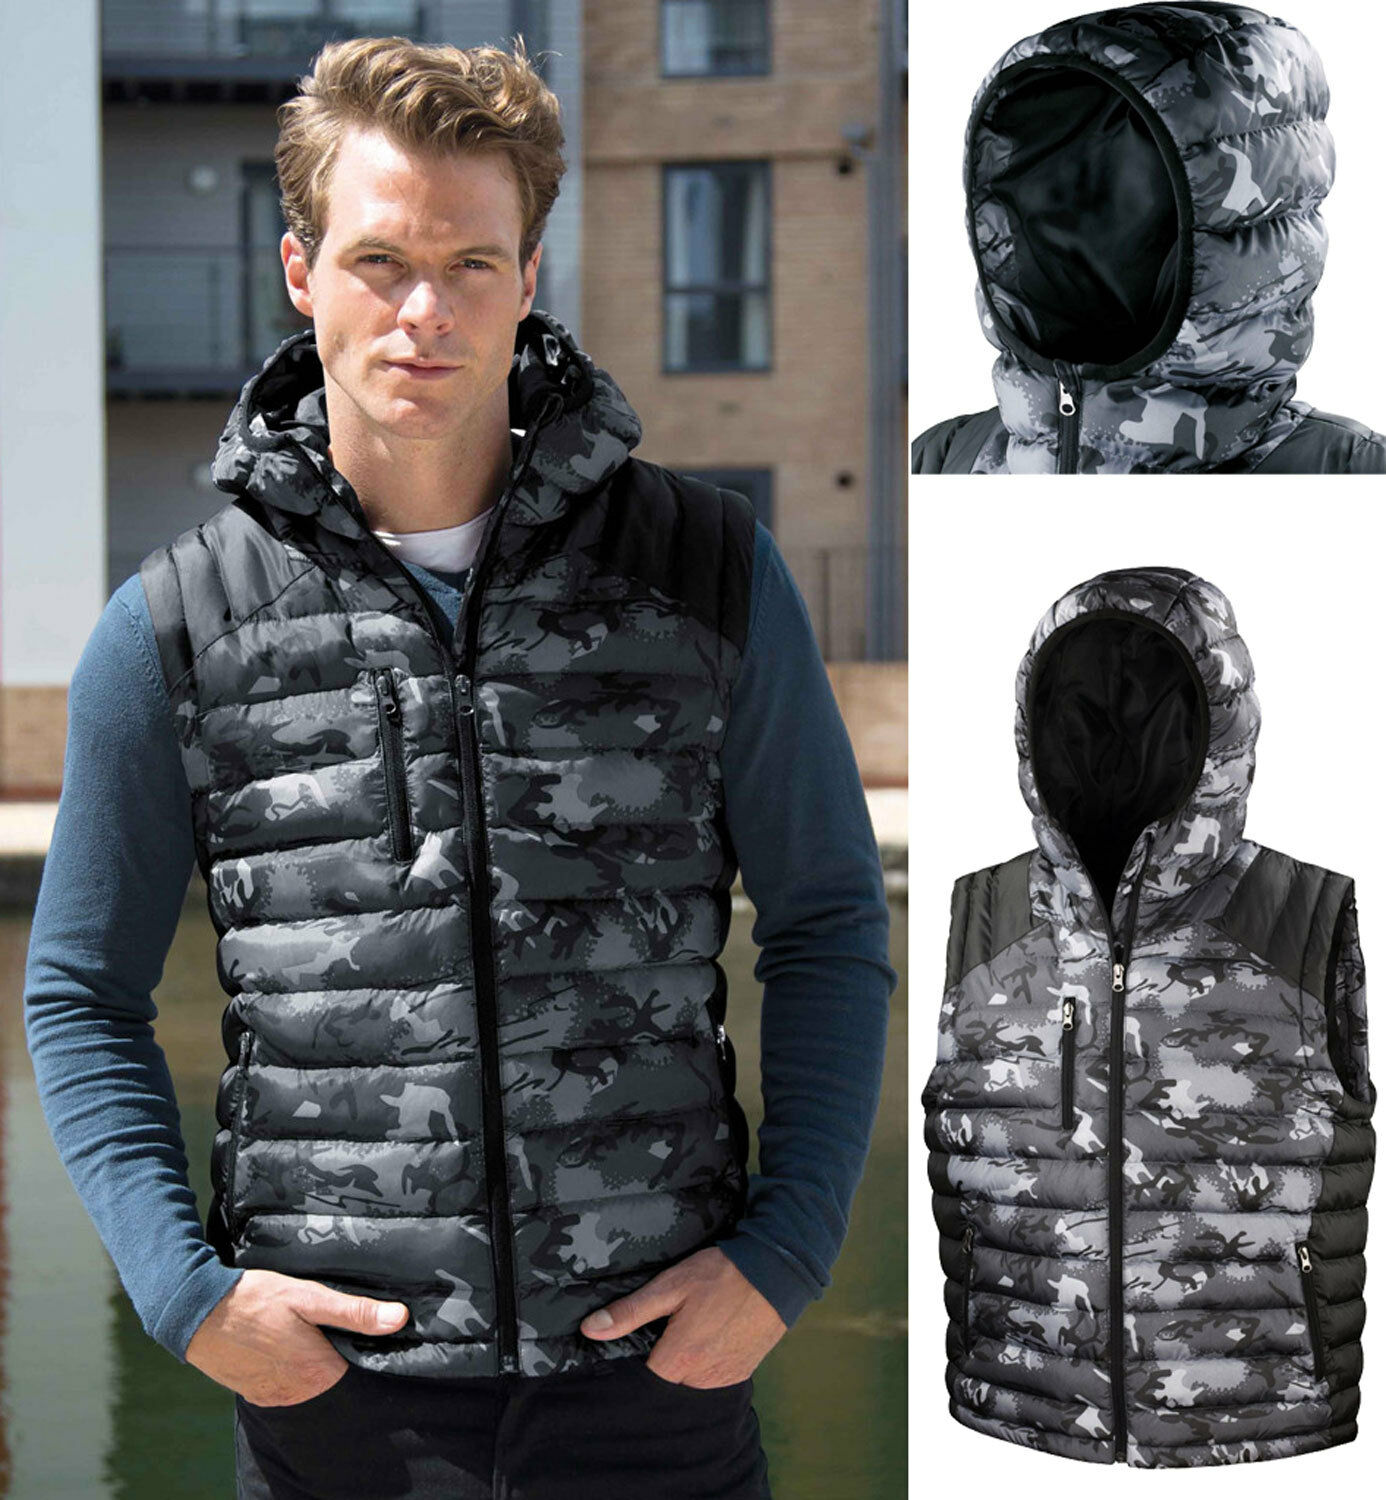 Result Camo Camouflage Hooded Padded Quilted Body Warmer Sleeveless Gilet XS-3XL